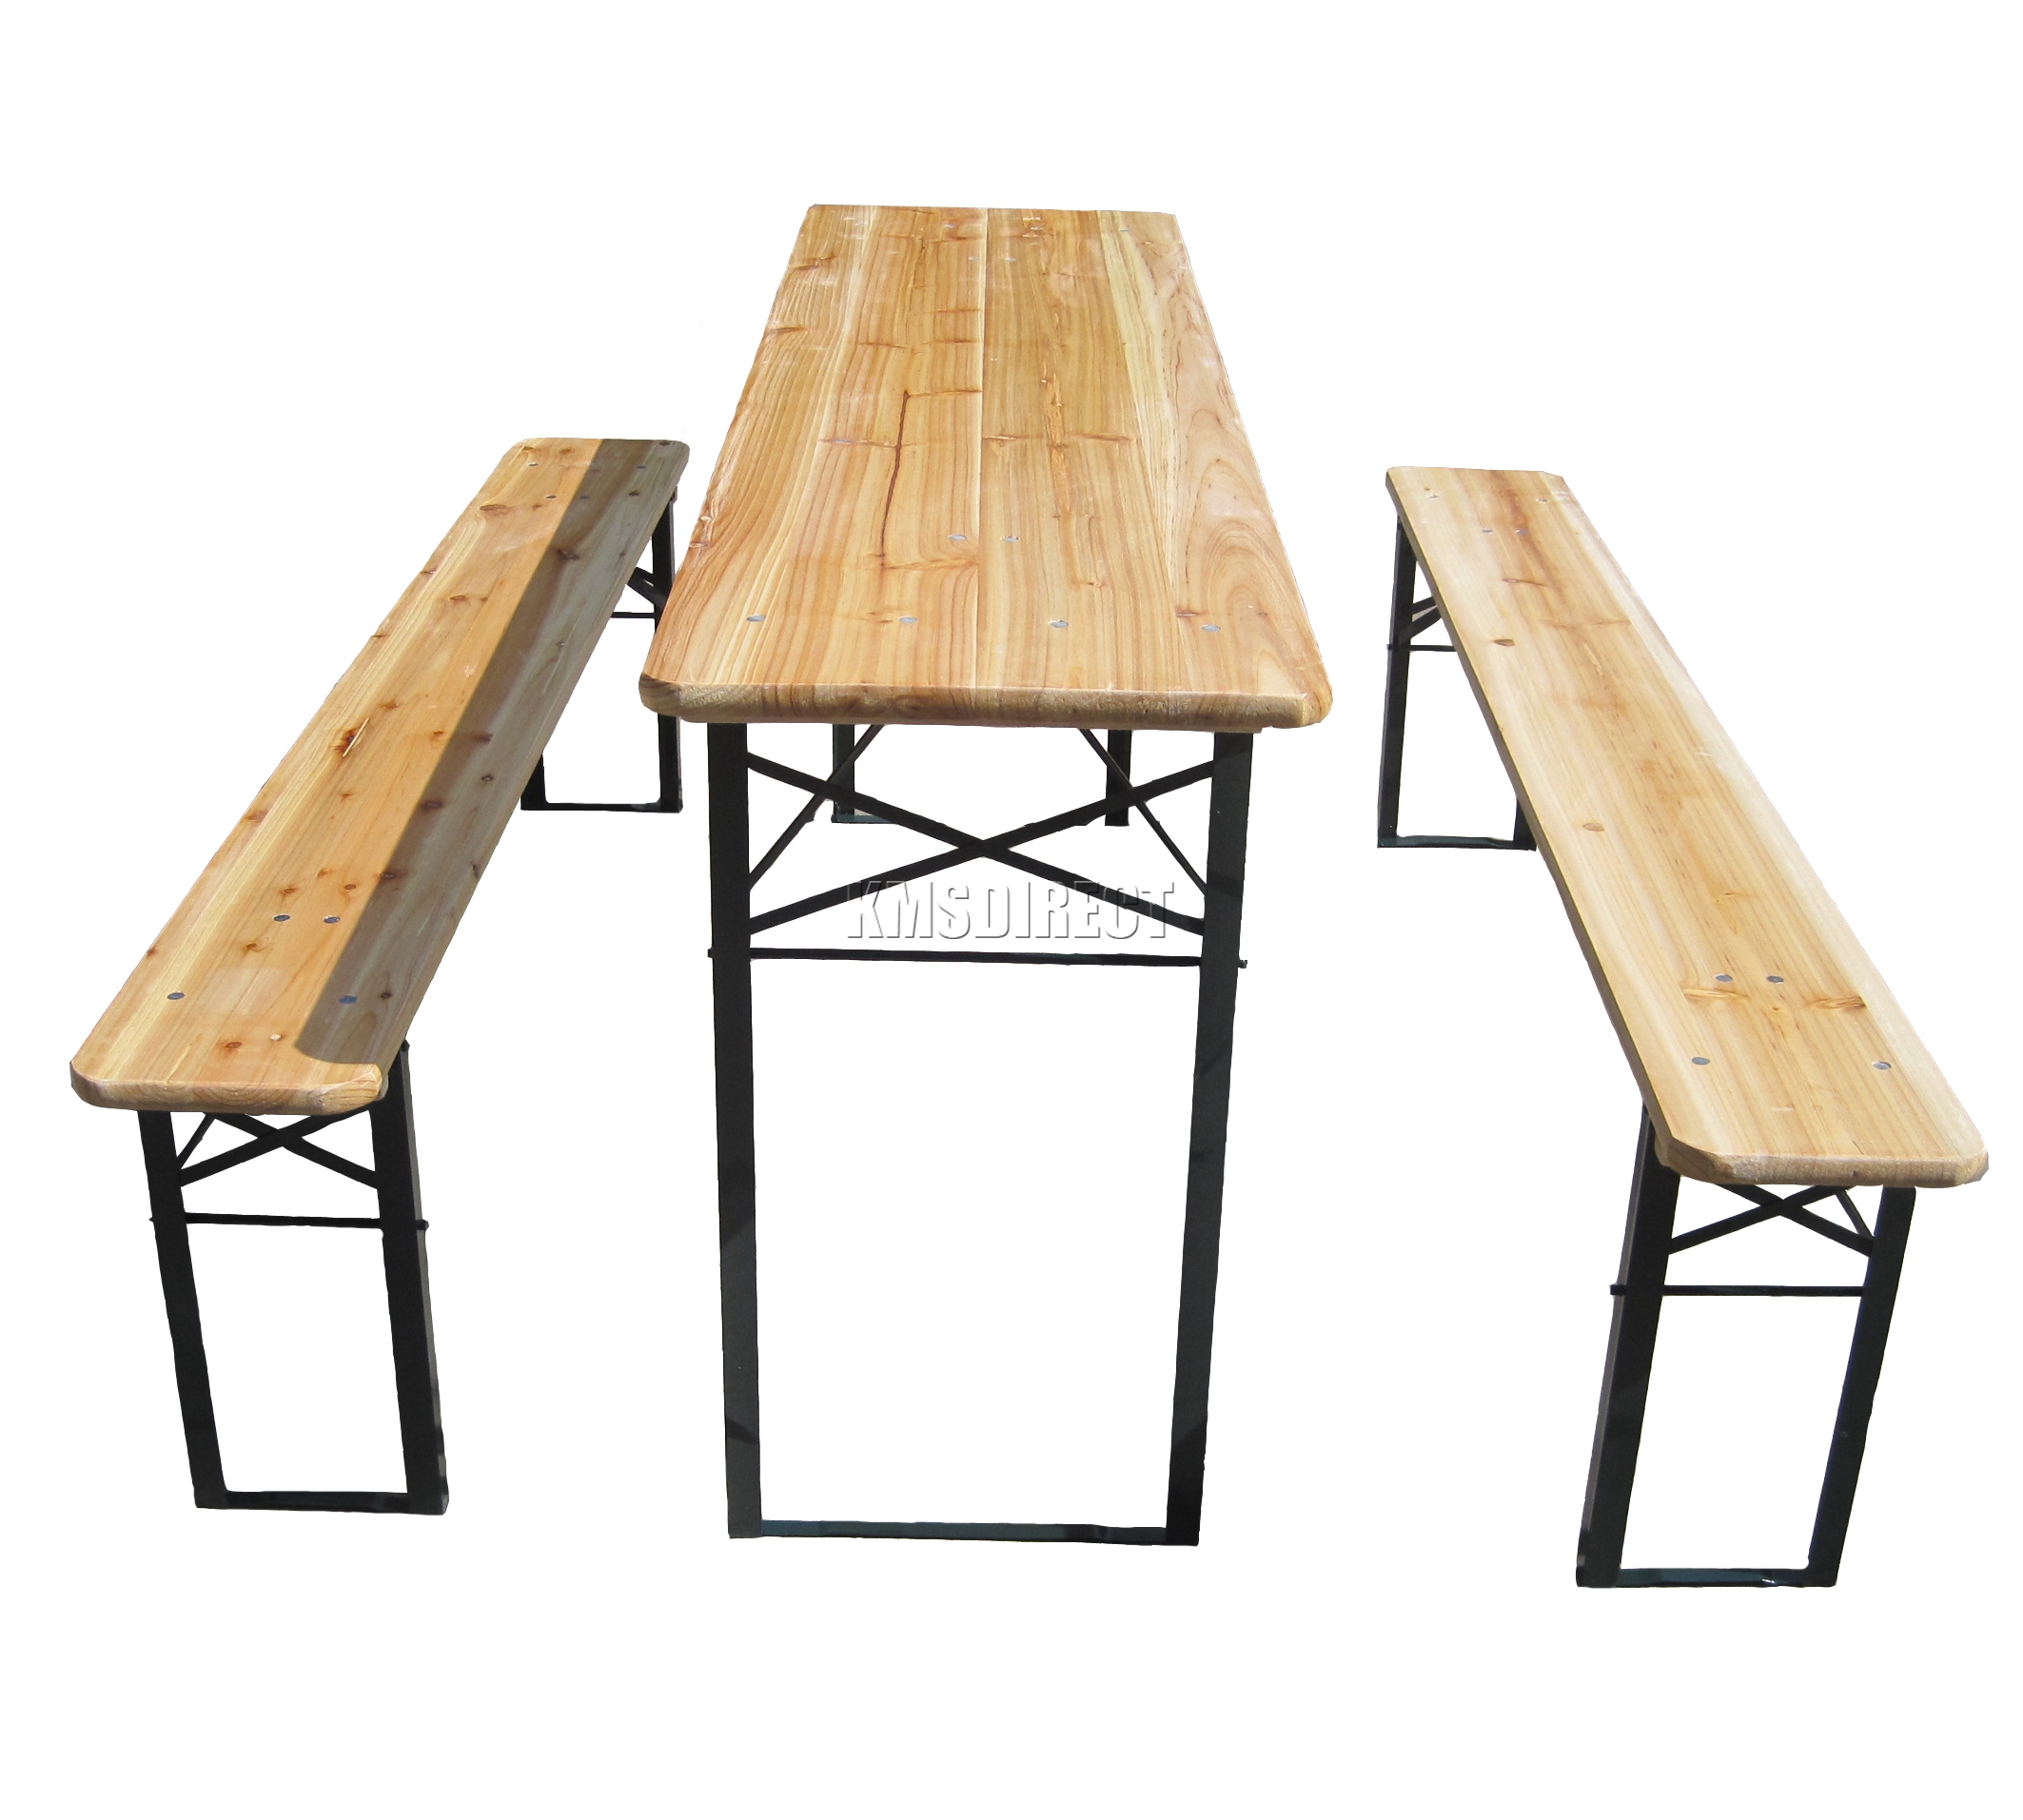 wooden folding table and chairs set chase lounge beer bench trestle party pub